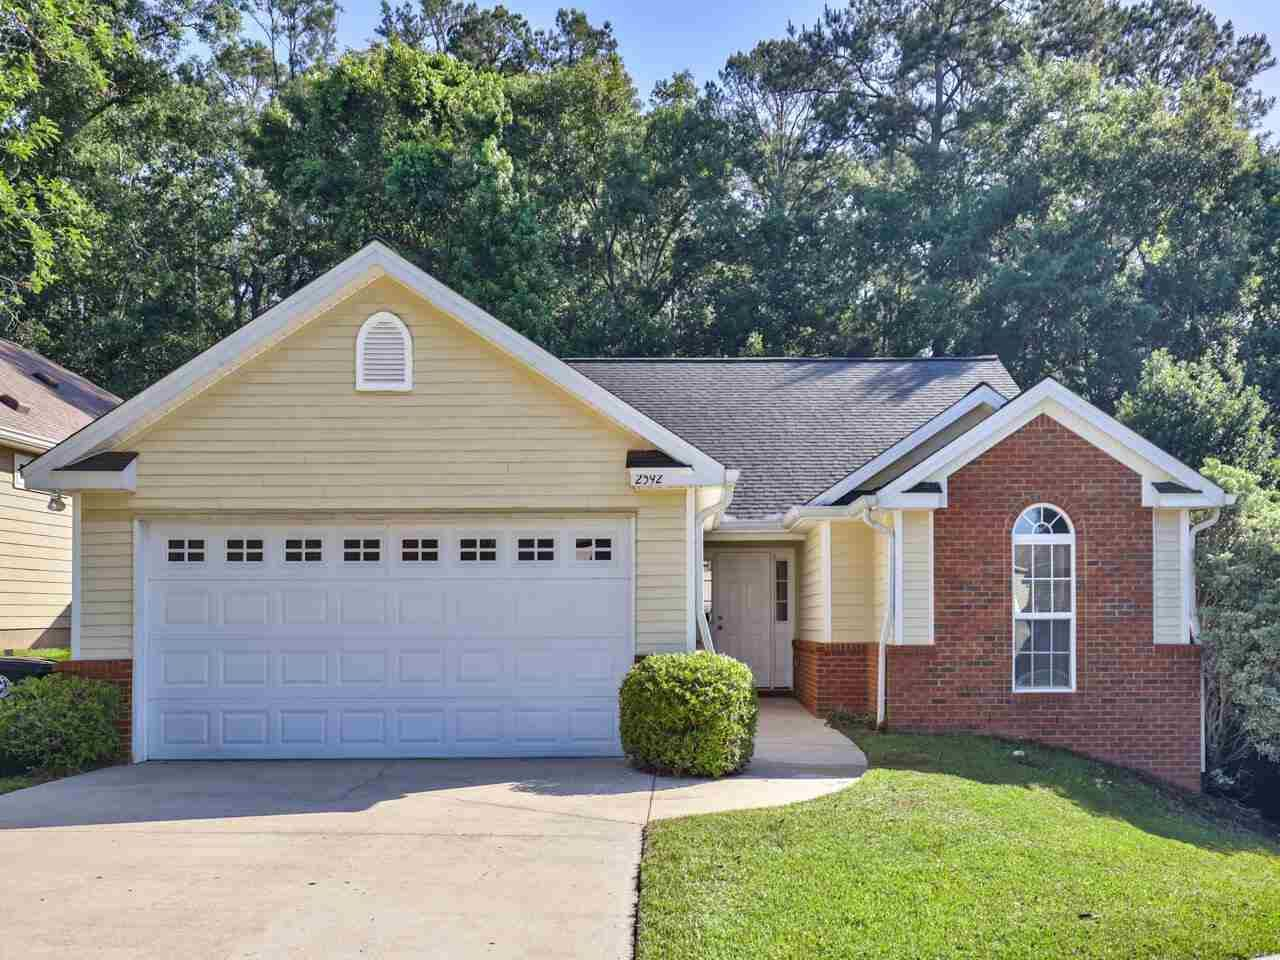 2592 Heathrow Drive, Tallahassee, FL 32312 - MLS#: 332388